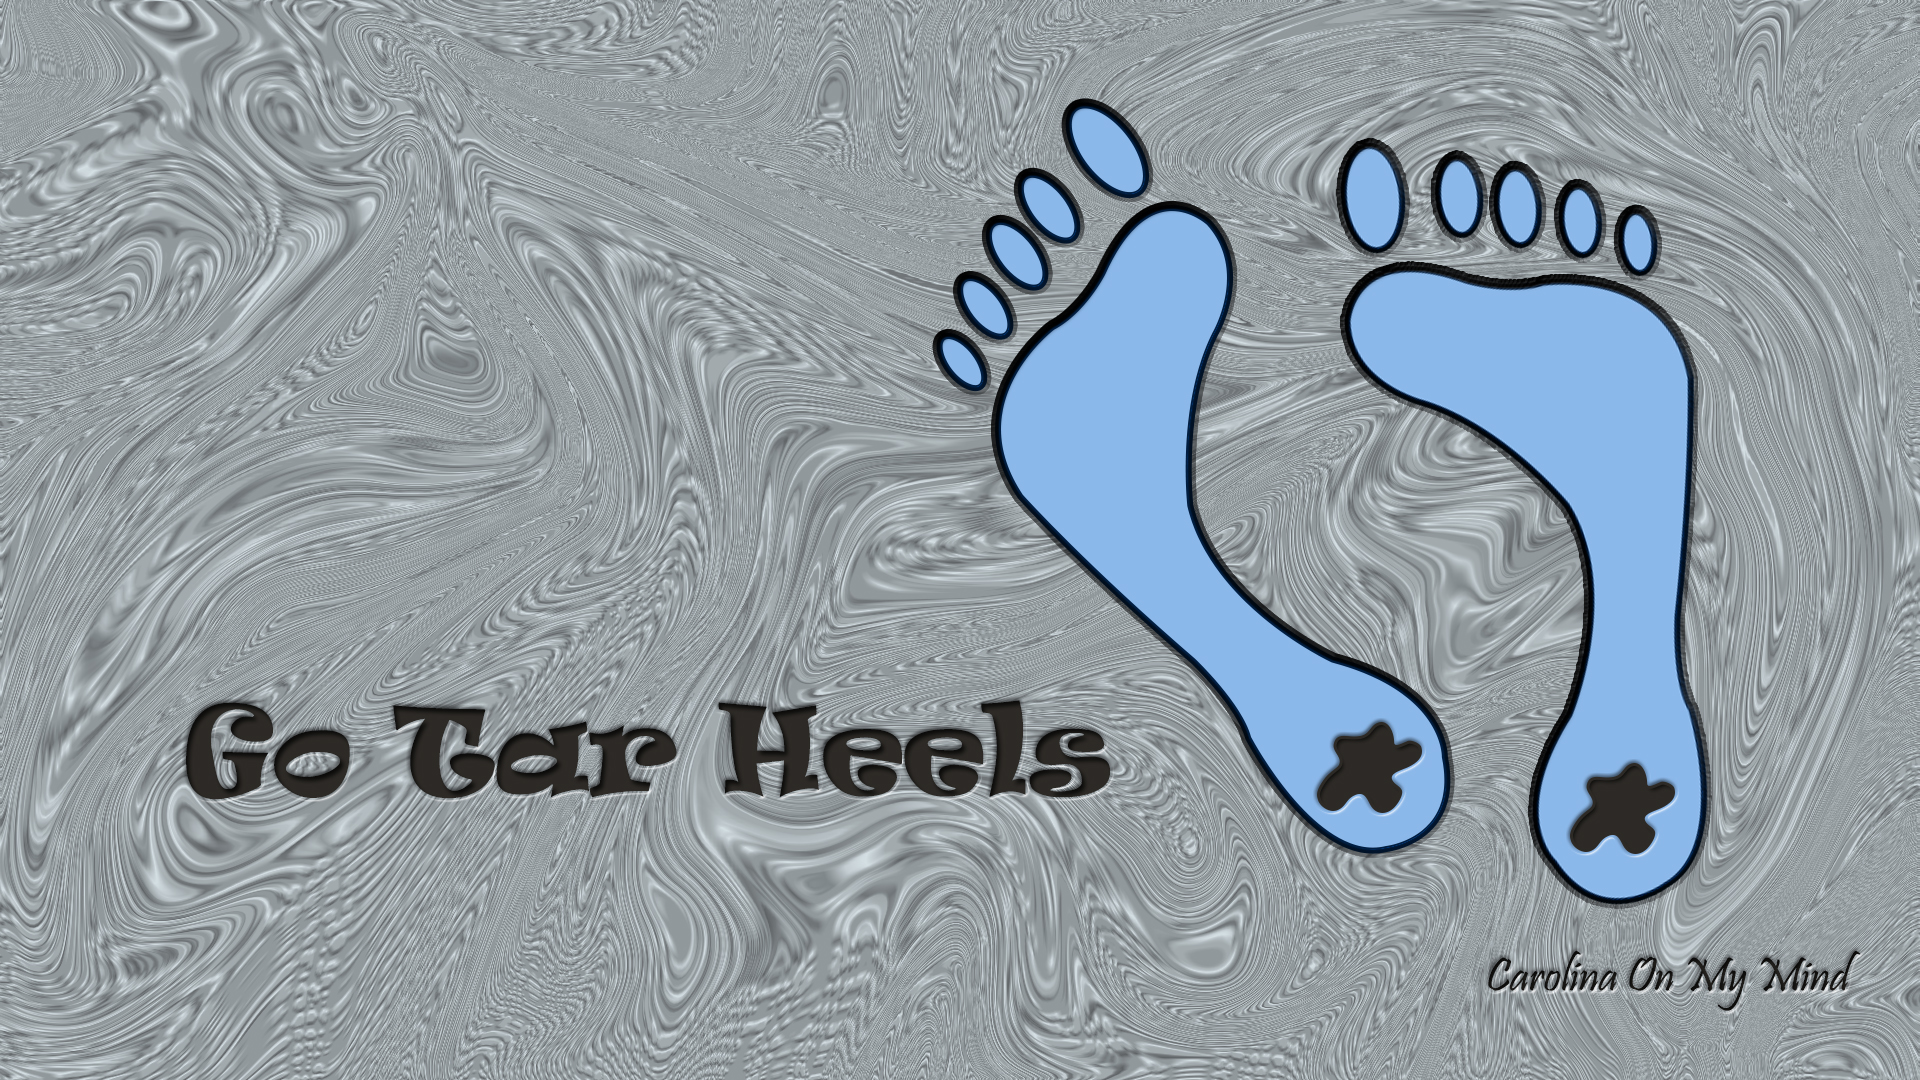 UNC Desktop Wallpaper On Gray Swirl With Tar Heels